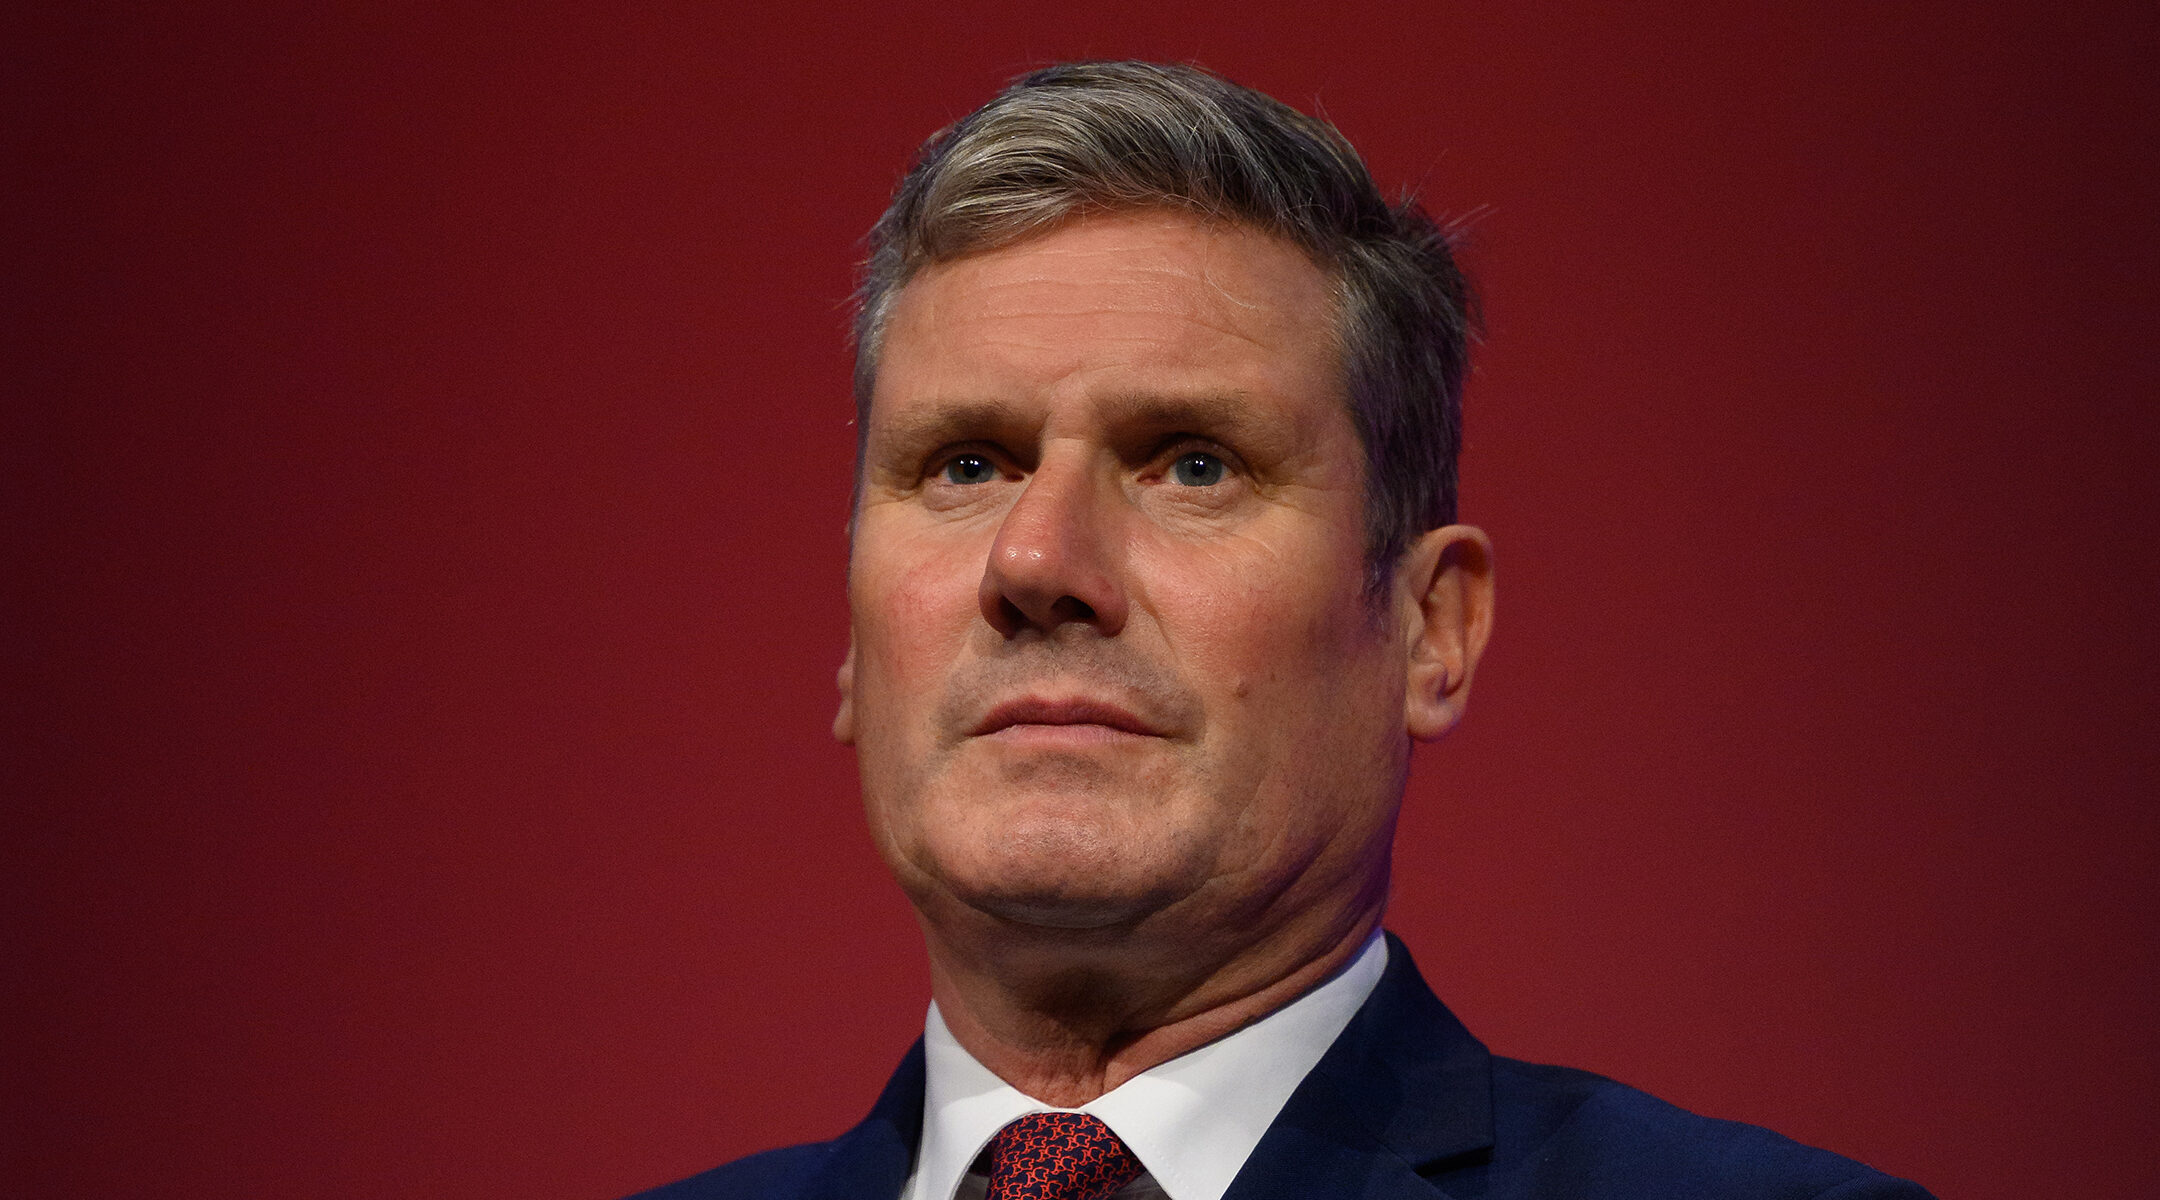 Keir Starmer speaks at the annual Labour conference in Brighton, UK on Sept. 25, 2021. (Leon Neal/Getty Images)